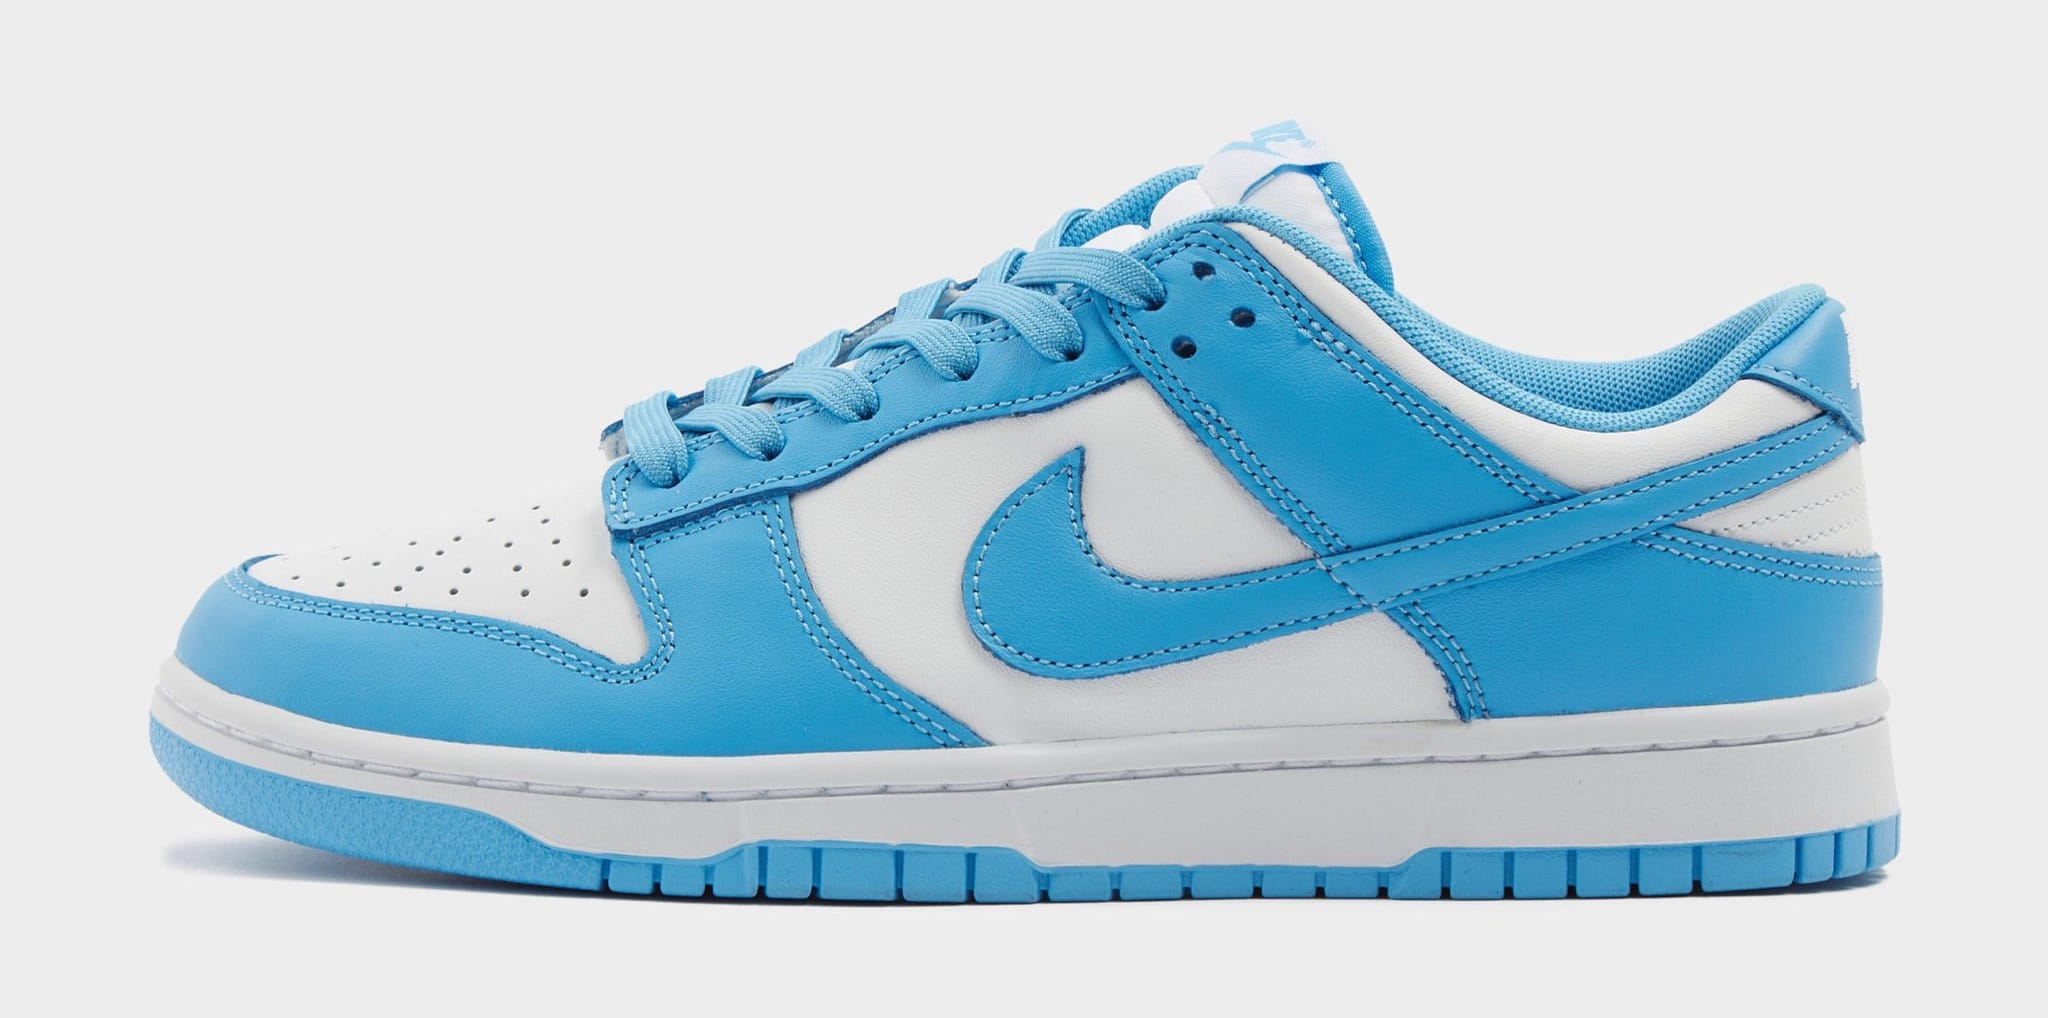 Nike Dunk Low 'University Blue' DD1391-102 Lateral